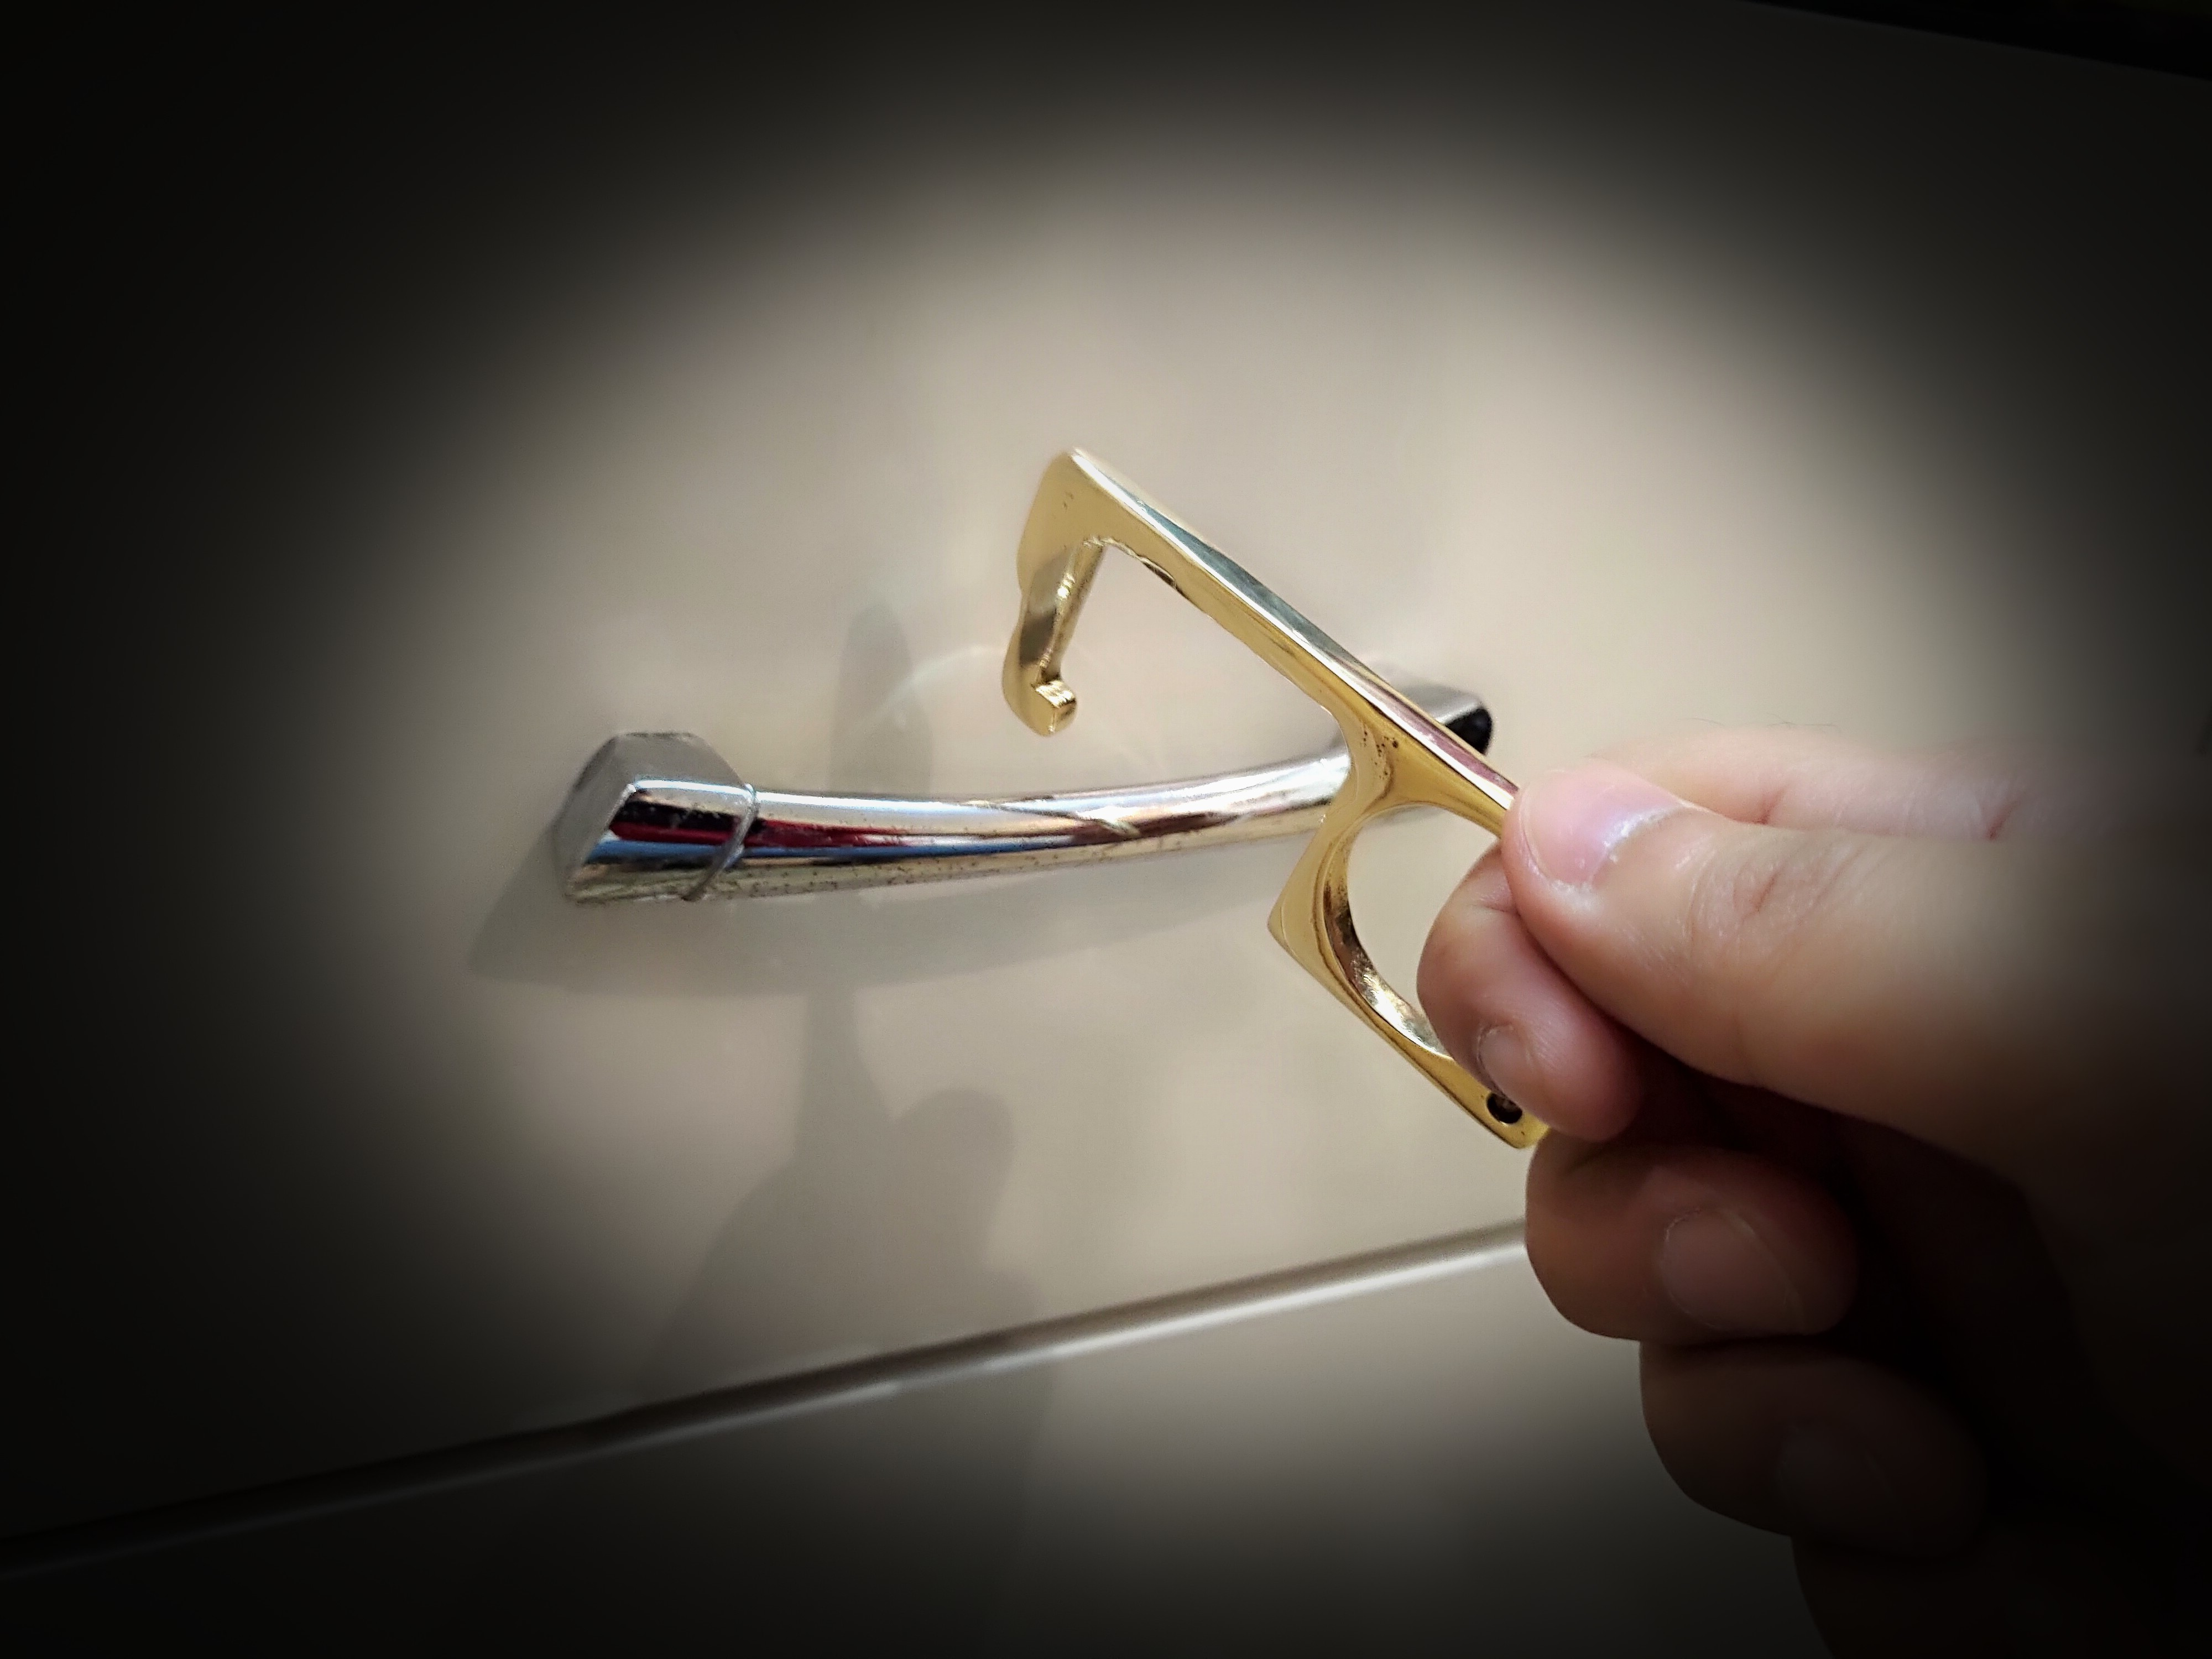 Crab Style Pockee -Zero Touch Reusable Contactless Key Hands Safety To Open Door Bottle Opener Brass Keychain